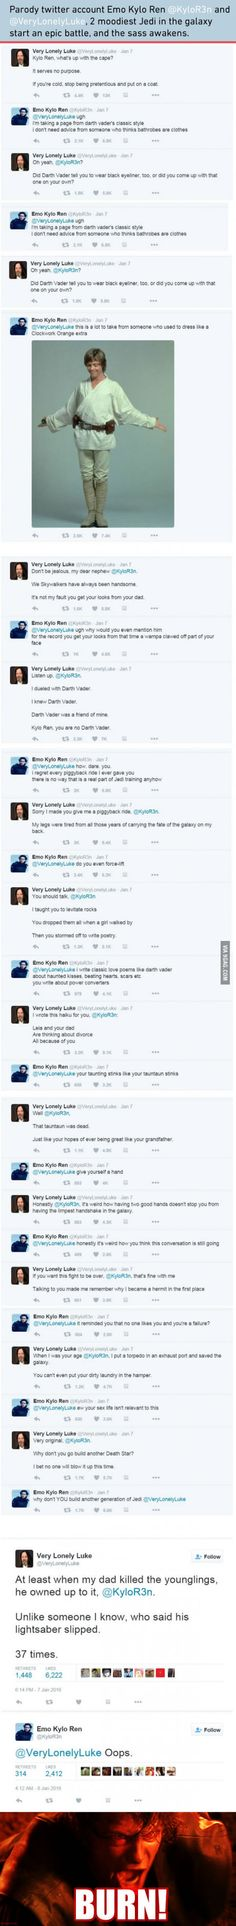 The Sass Awakens In Emo Kylo Ren And Very Lonely Luke's Twitter Battle